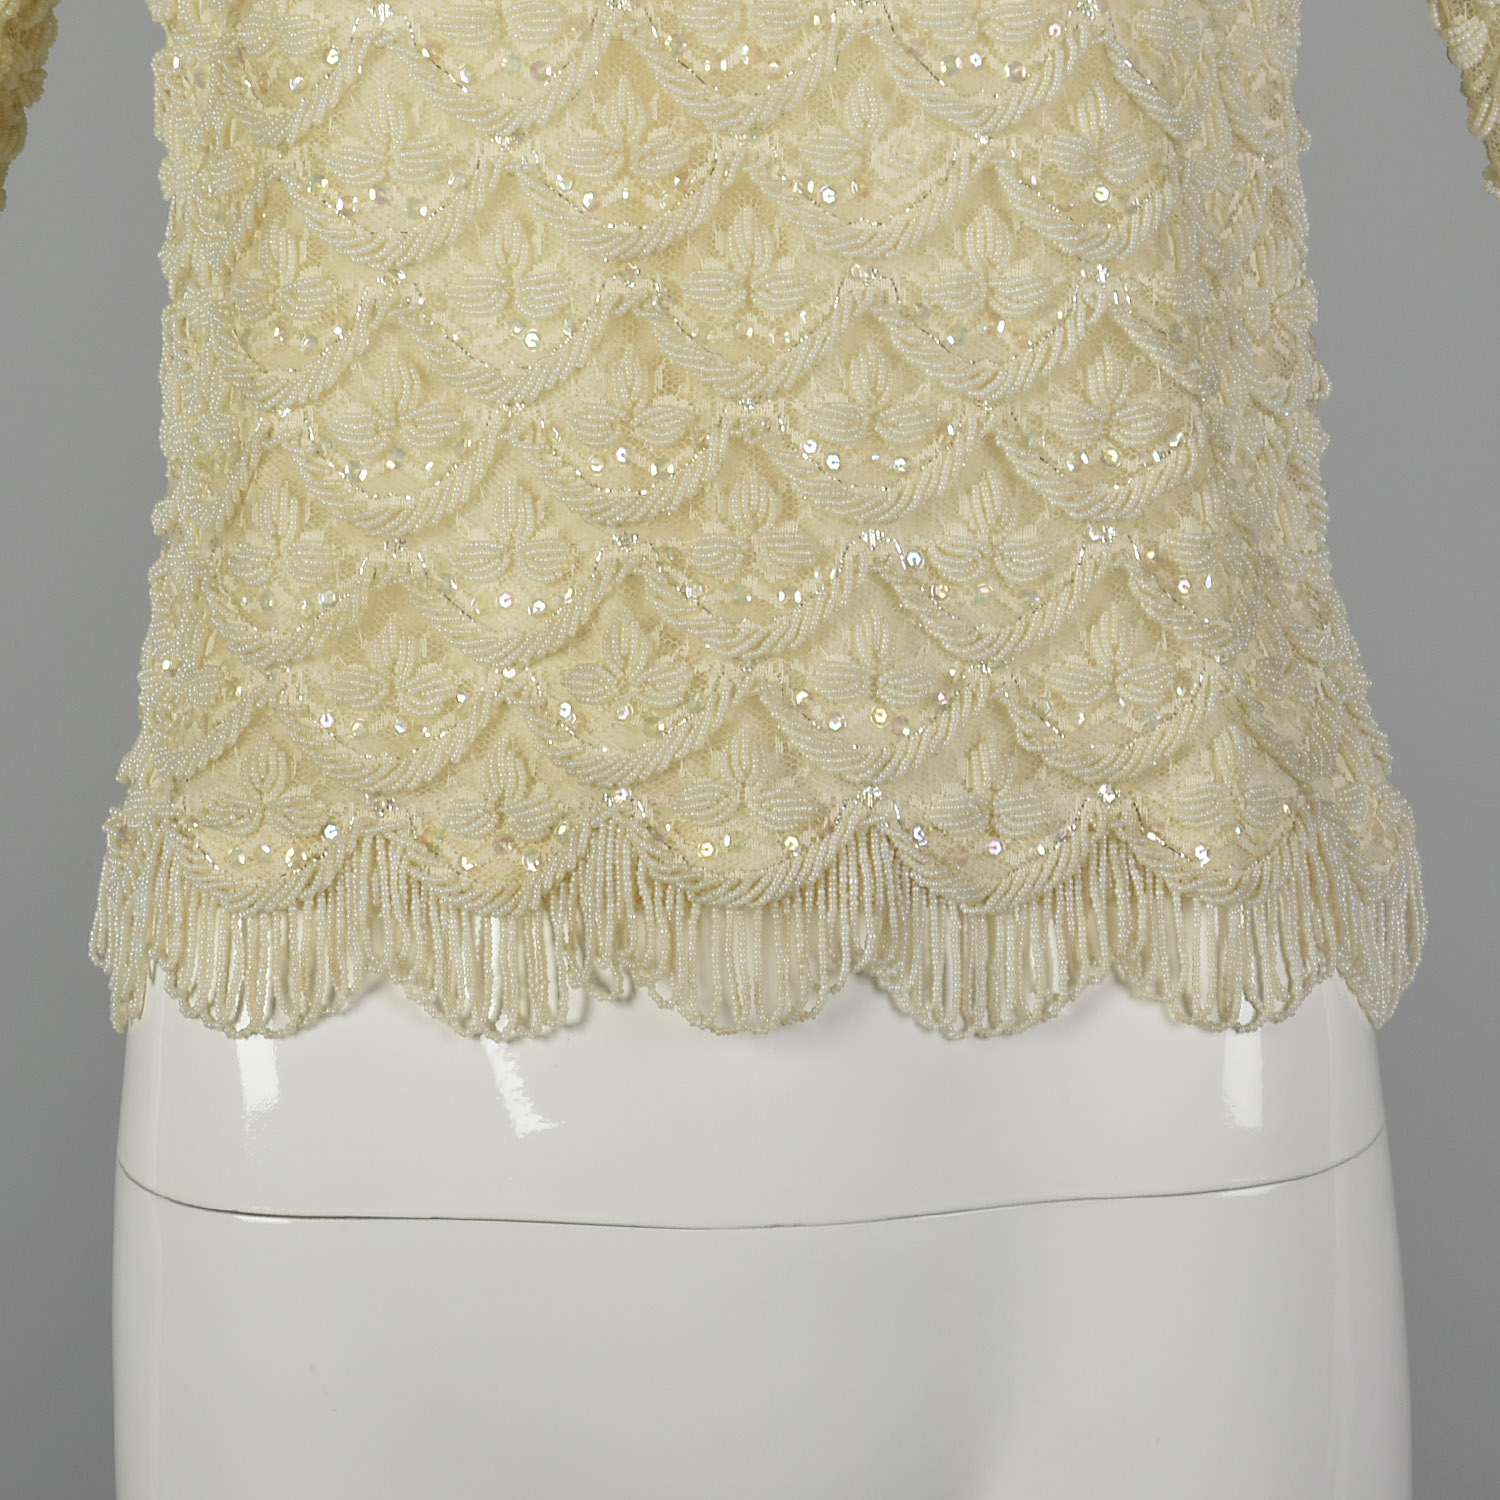 XXS 1960s Beaded Blouse in Ivory Vintage Beaded Top 60s Beaded Blouse Wedding Blouse Extra Small Wedding Top